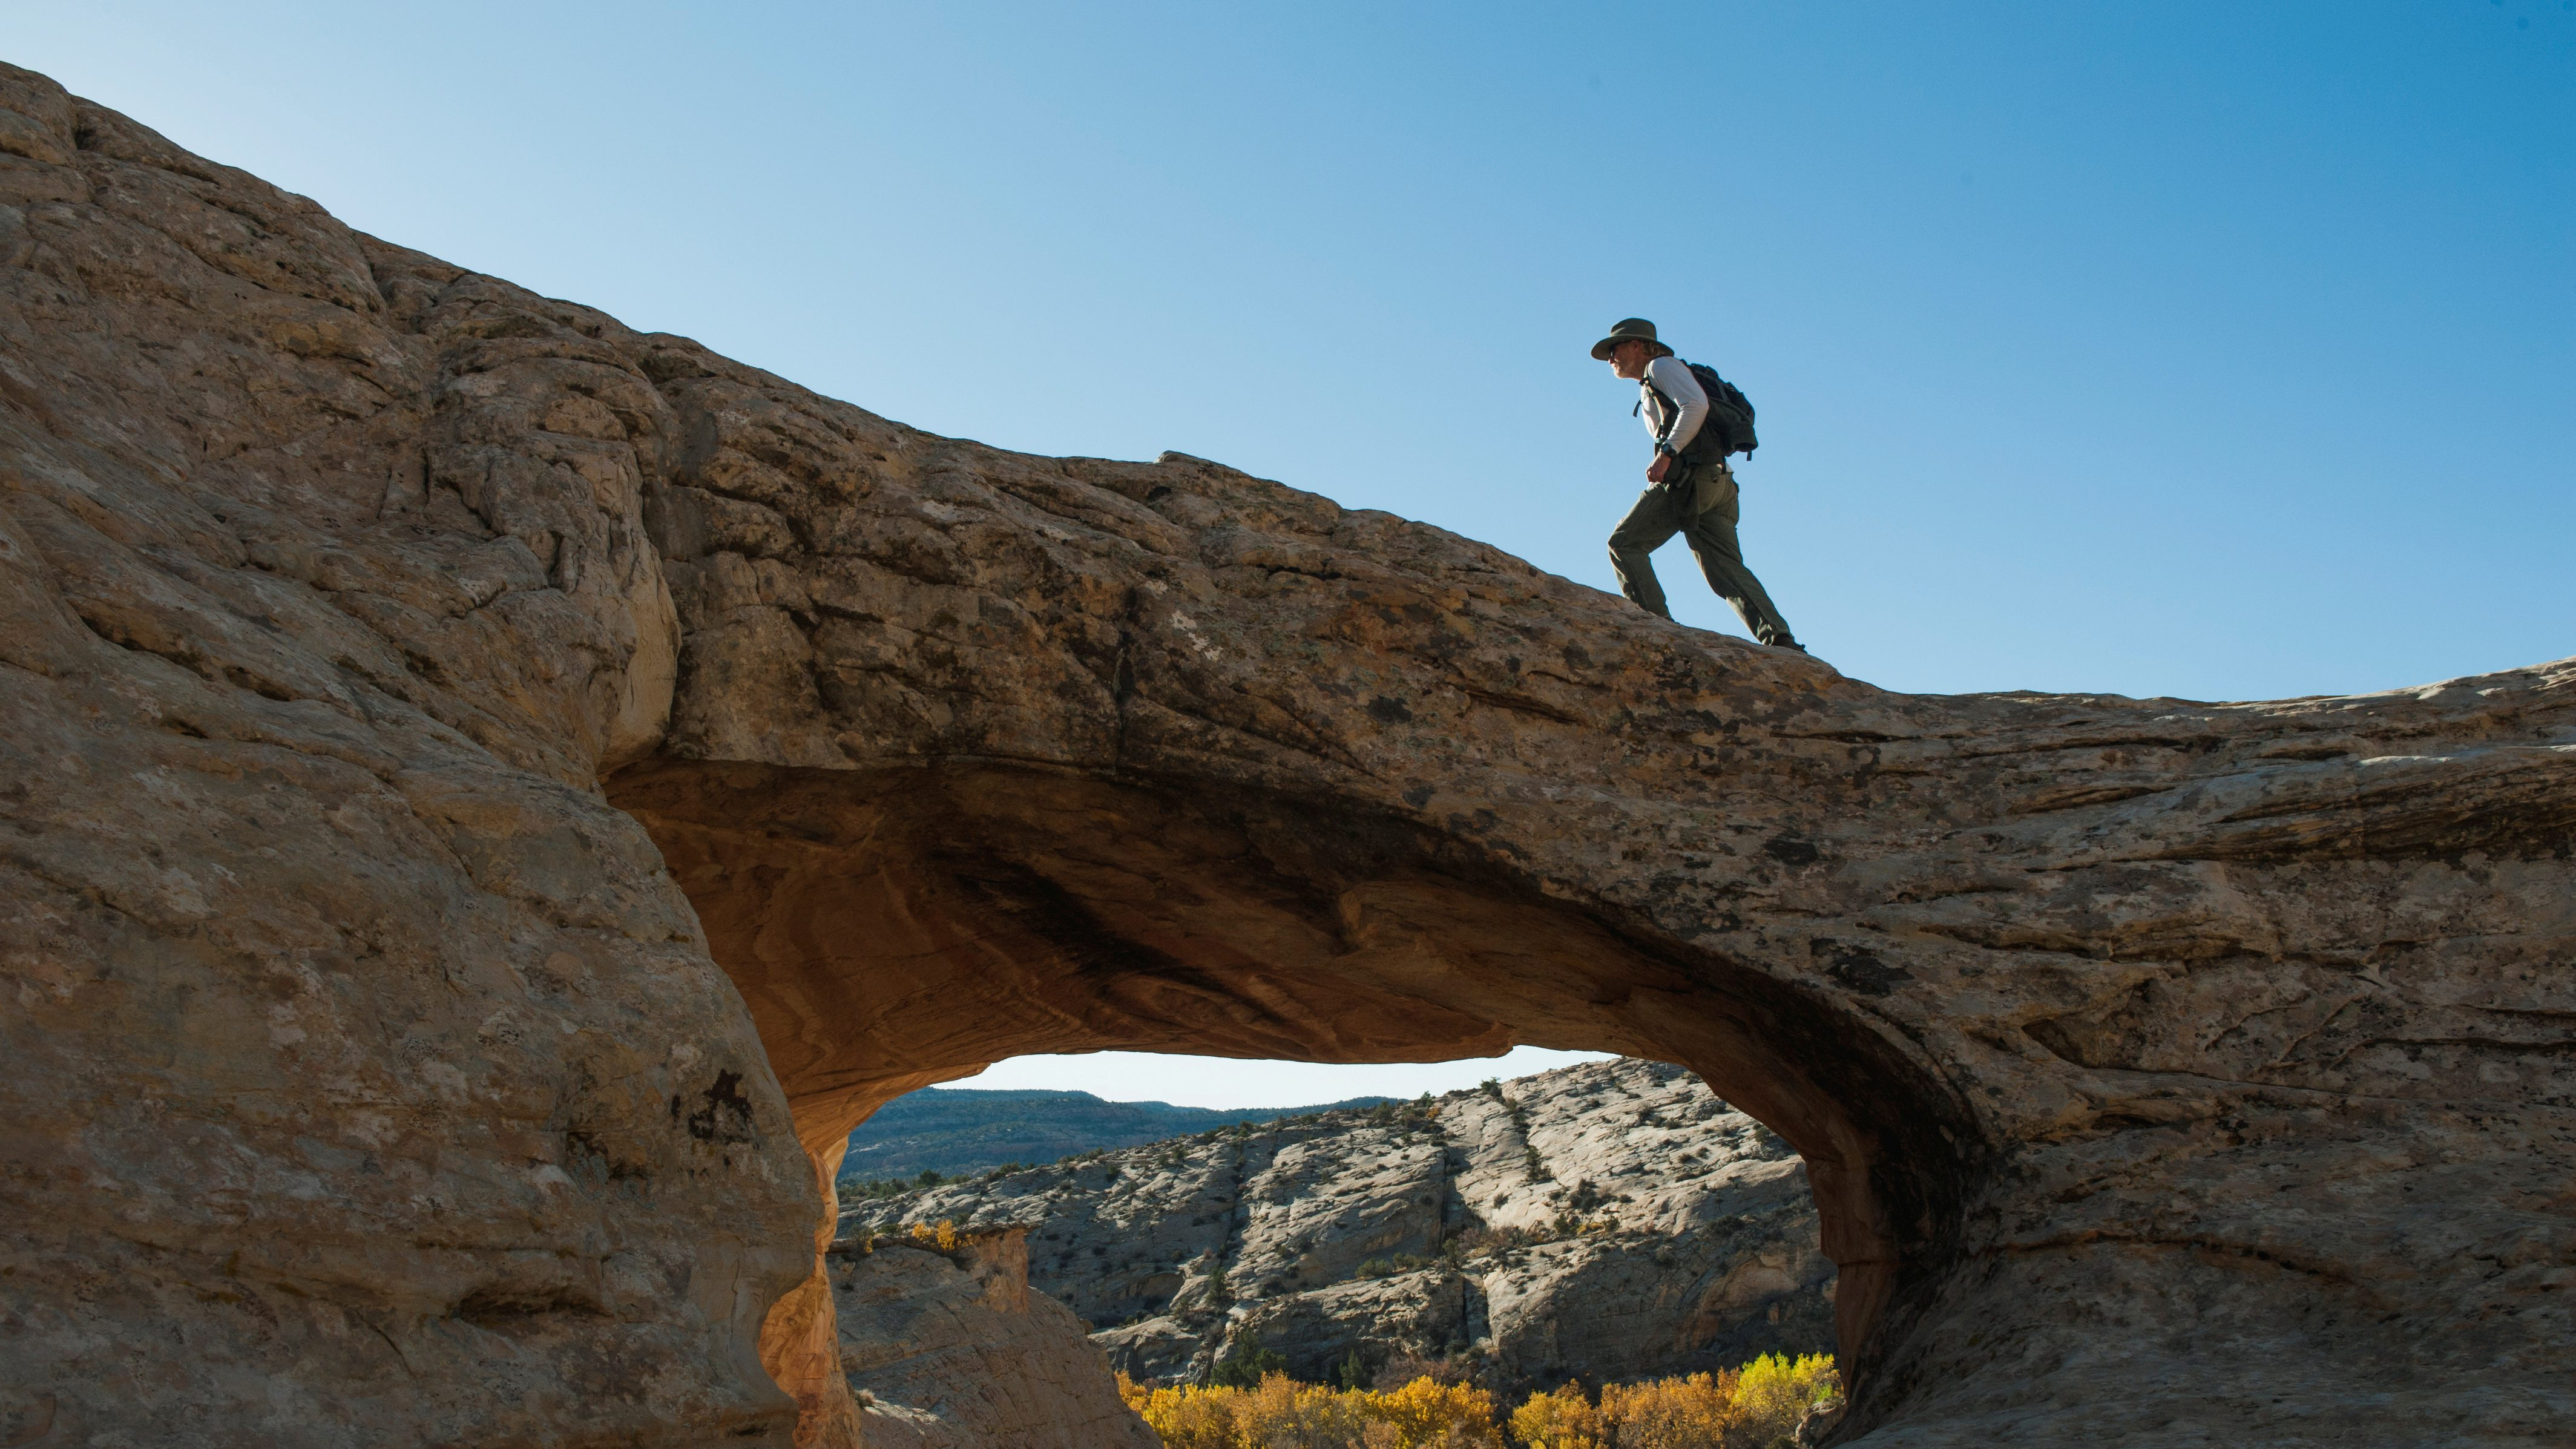 FILE PHOTO: A man walks over a natural bridge at Butler Wash in Bears Ears National Monument near Blanding